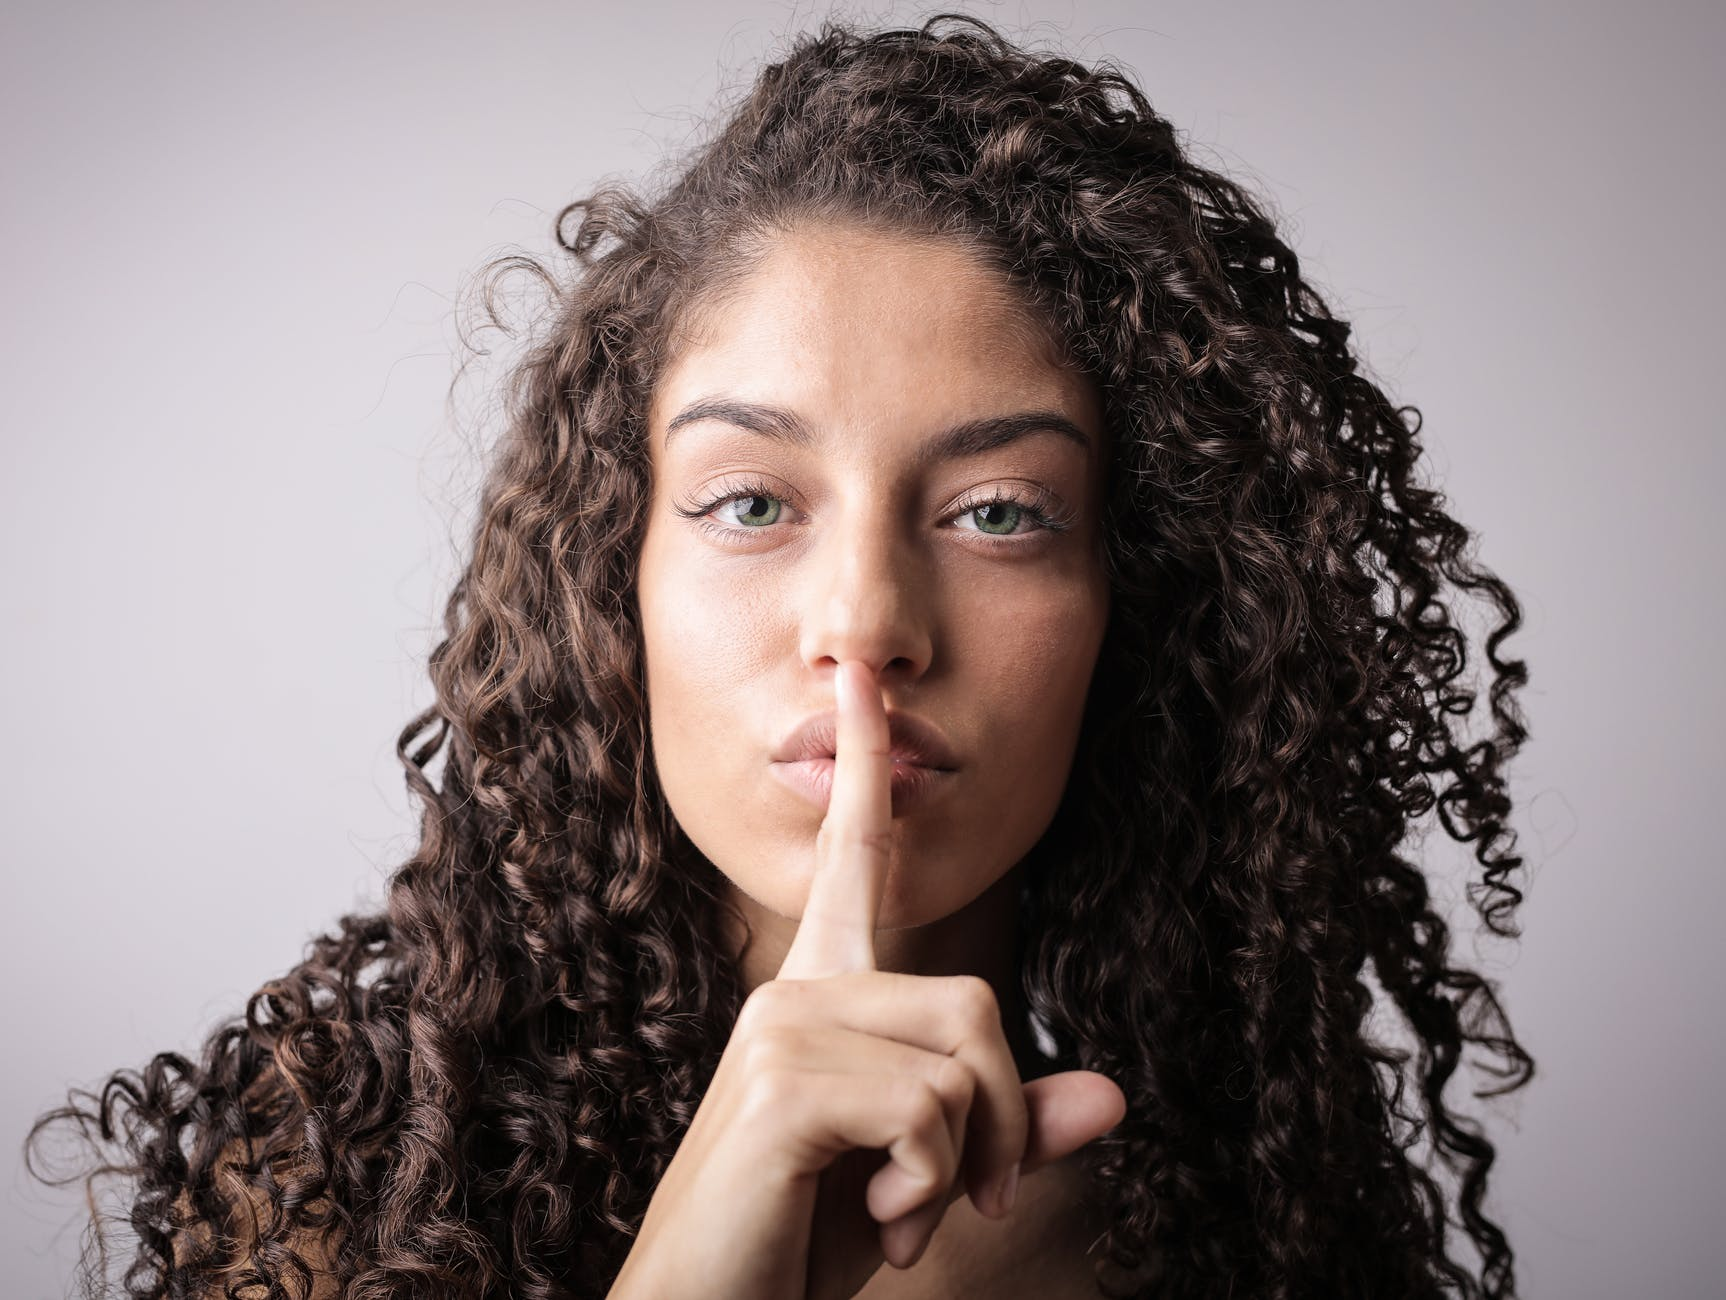 woman holding her finger to her lips as if to say 'shhh'